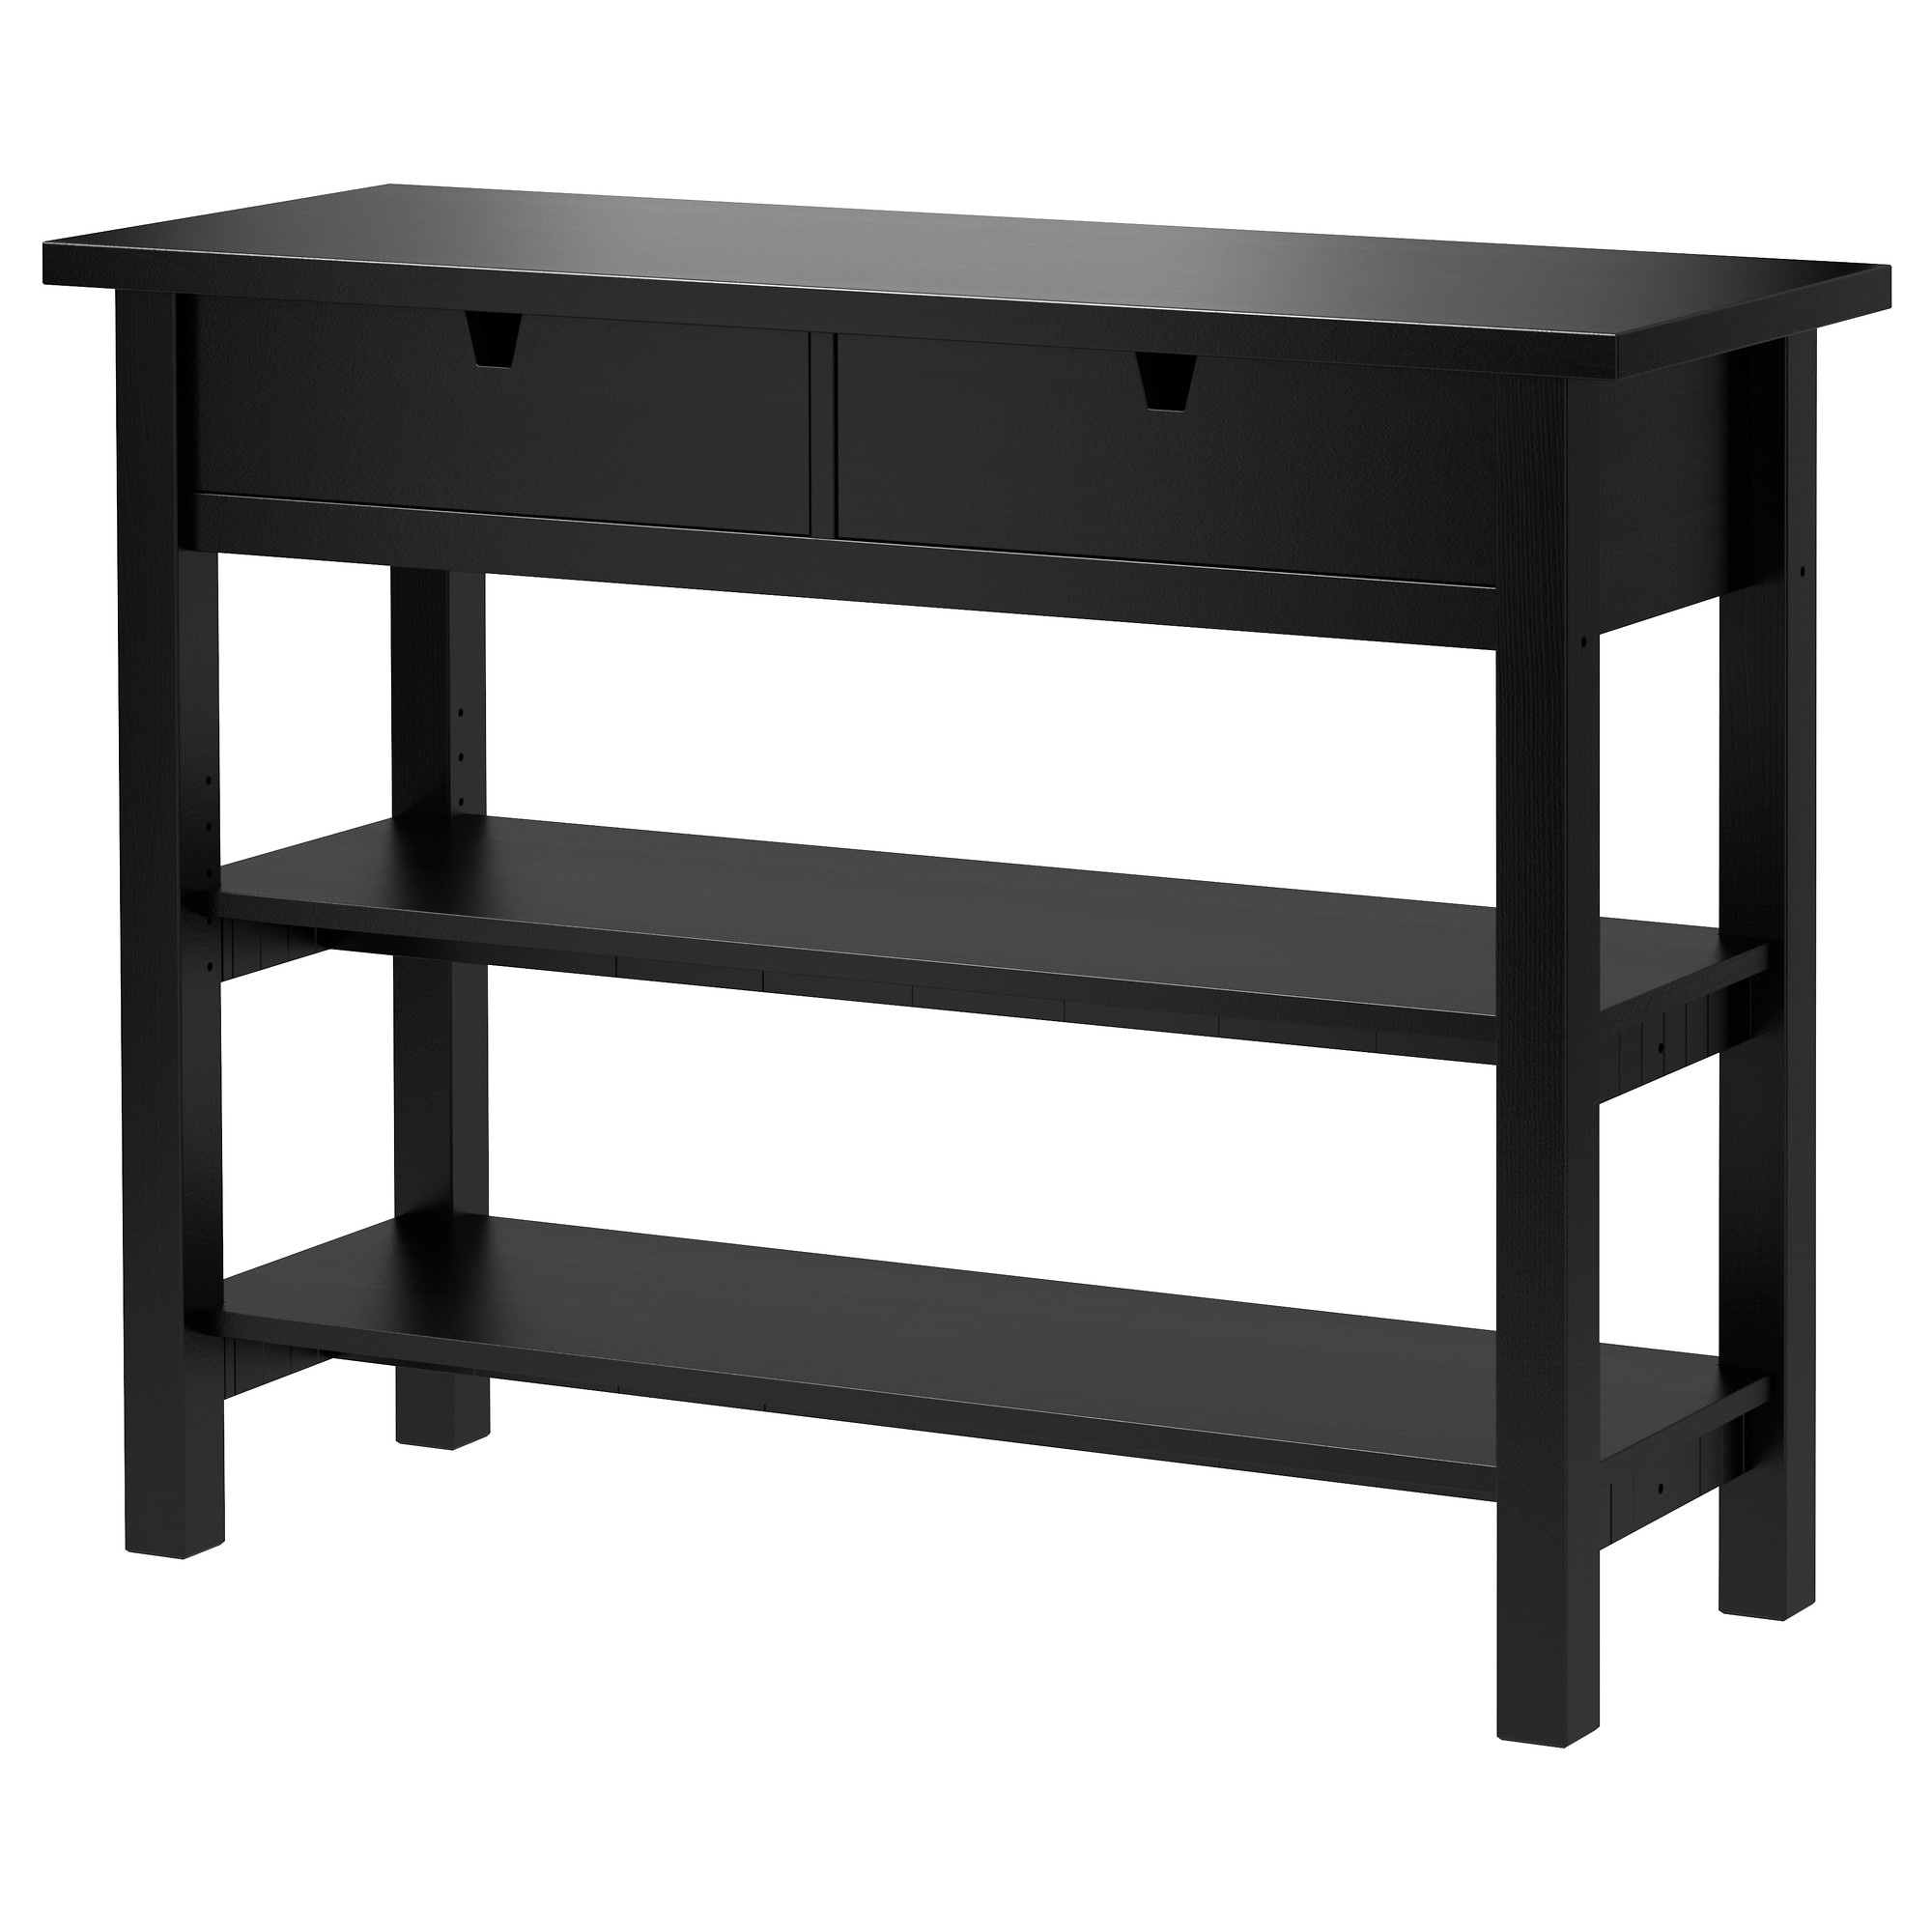 Console Tables IKEA - Console tables ikea